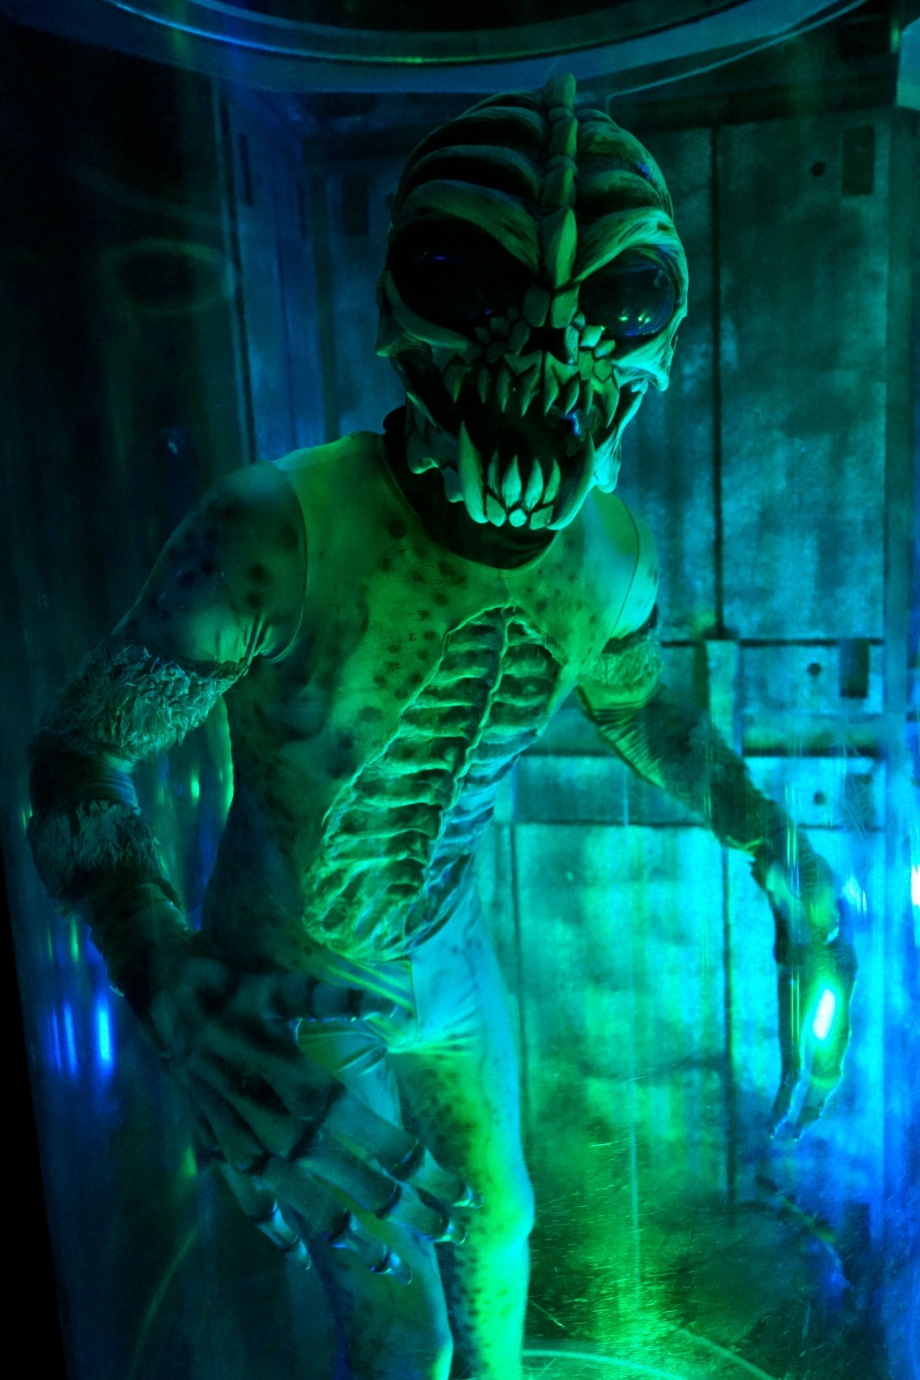 Alien-Humans Hybrid Halloween Horror Nights 4 - AspirantSG